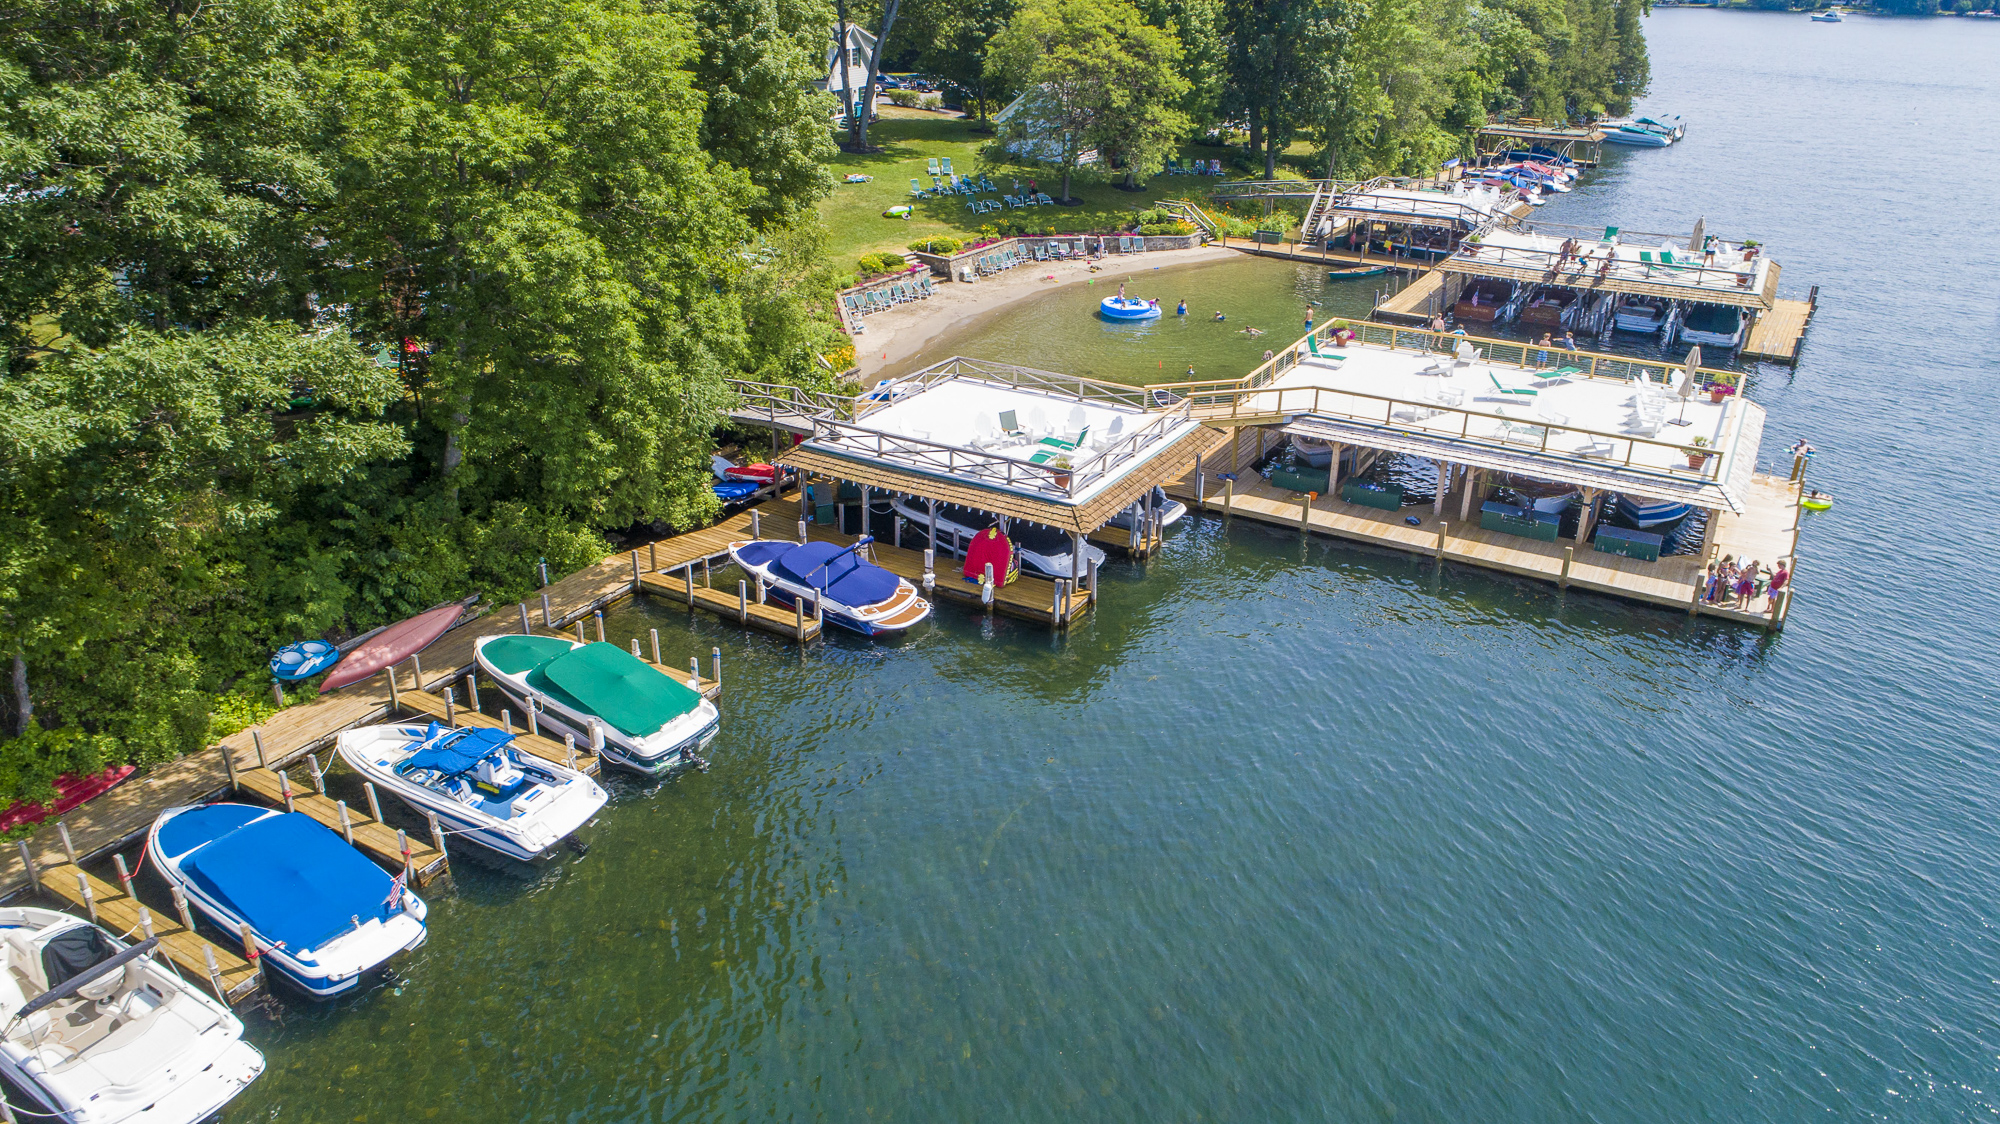 Takundewide Cottages on Lake George uncovered and covered docks